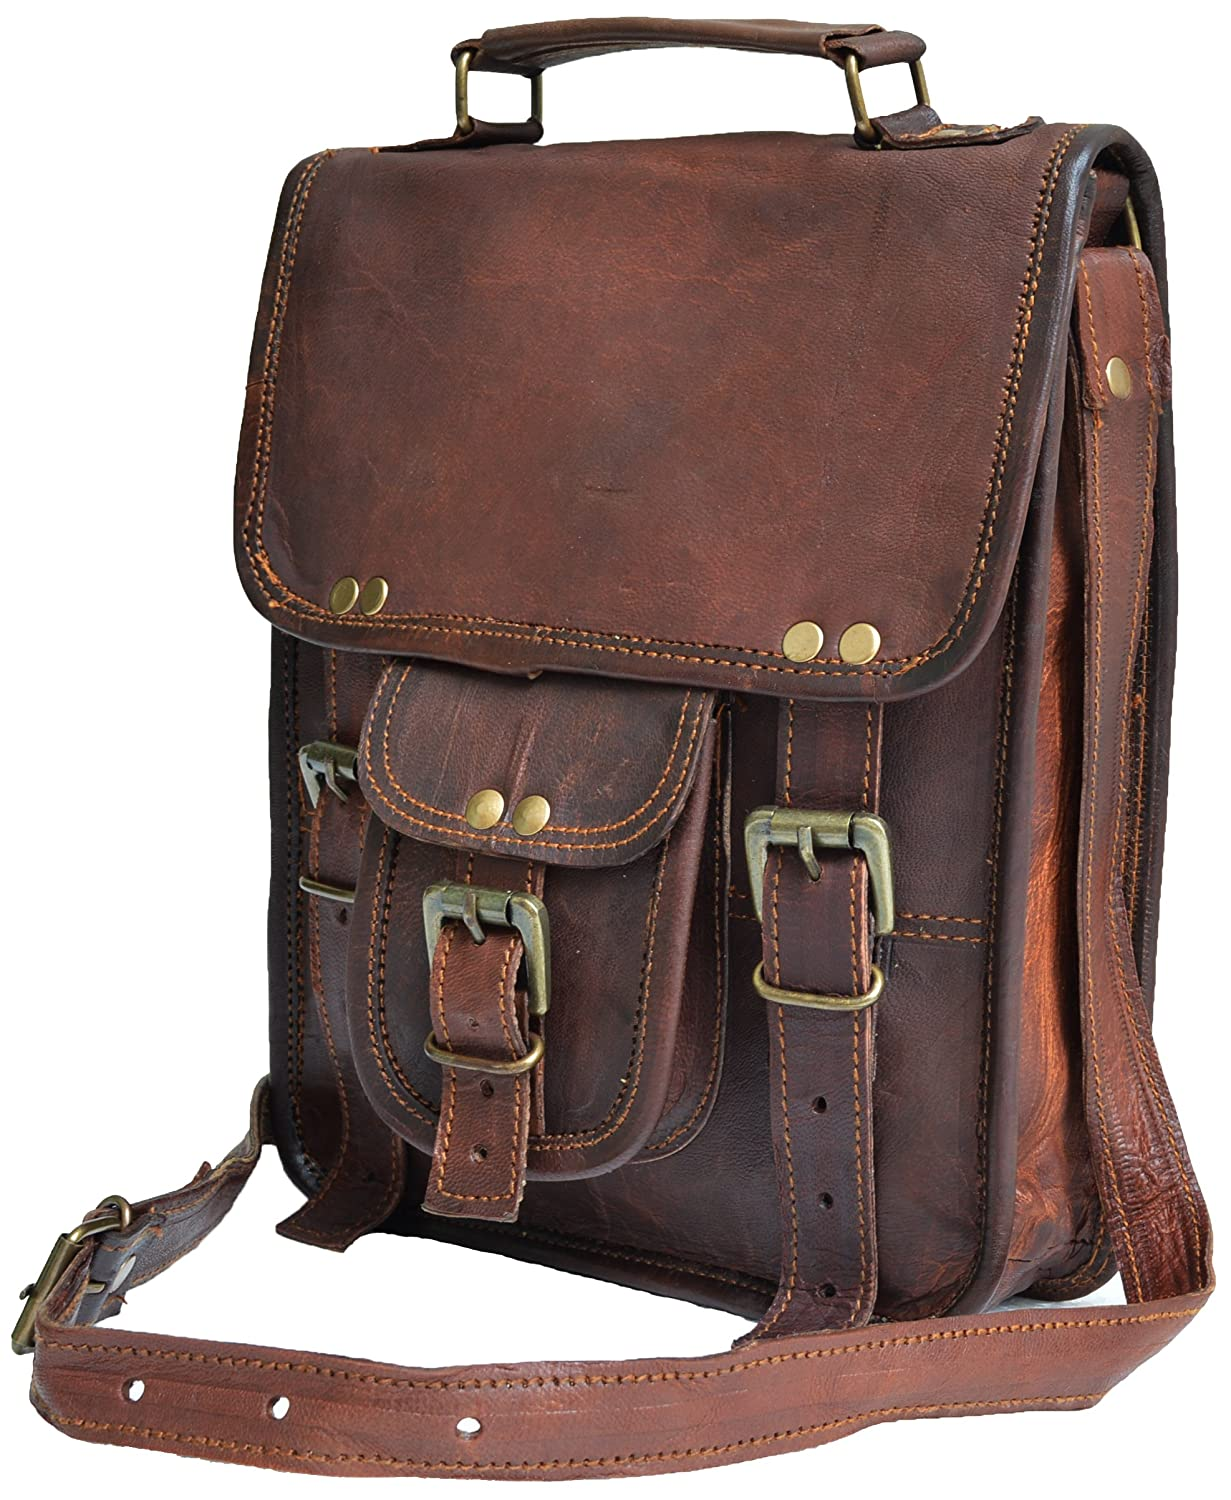 d44516e91a Amazon.com  Genuine distressed leather shoulder bag satchel for men messenger  bag ipad case tablet bag  Sports   Outdoors